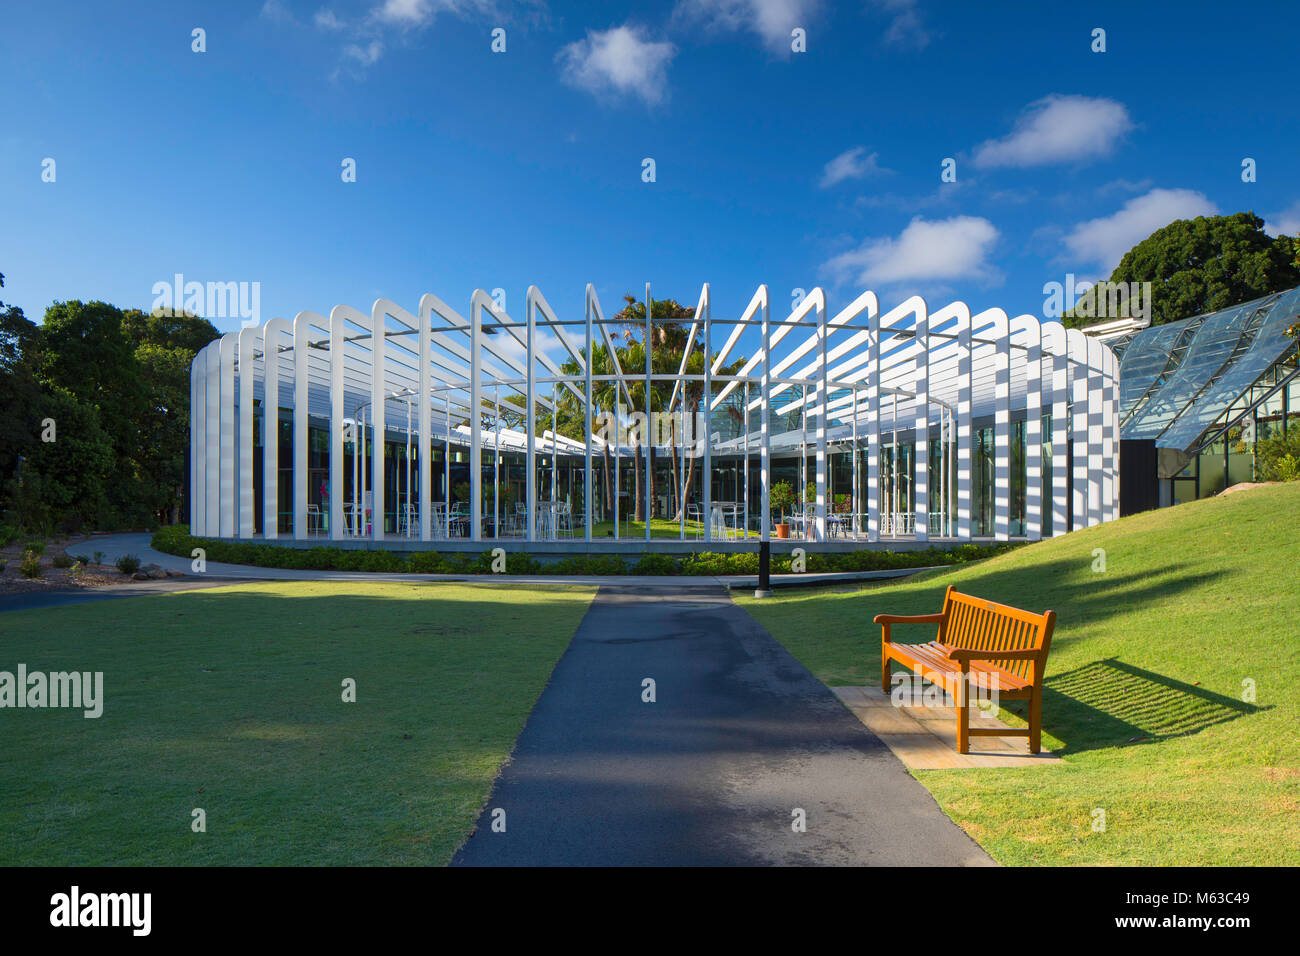 The Calyx in the Royal Botanic Gardens, Sydney, New South Wales, Australia - Stock Image